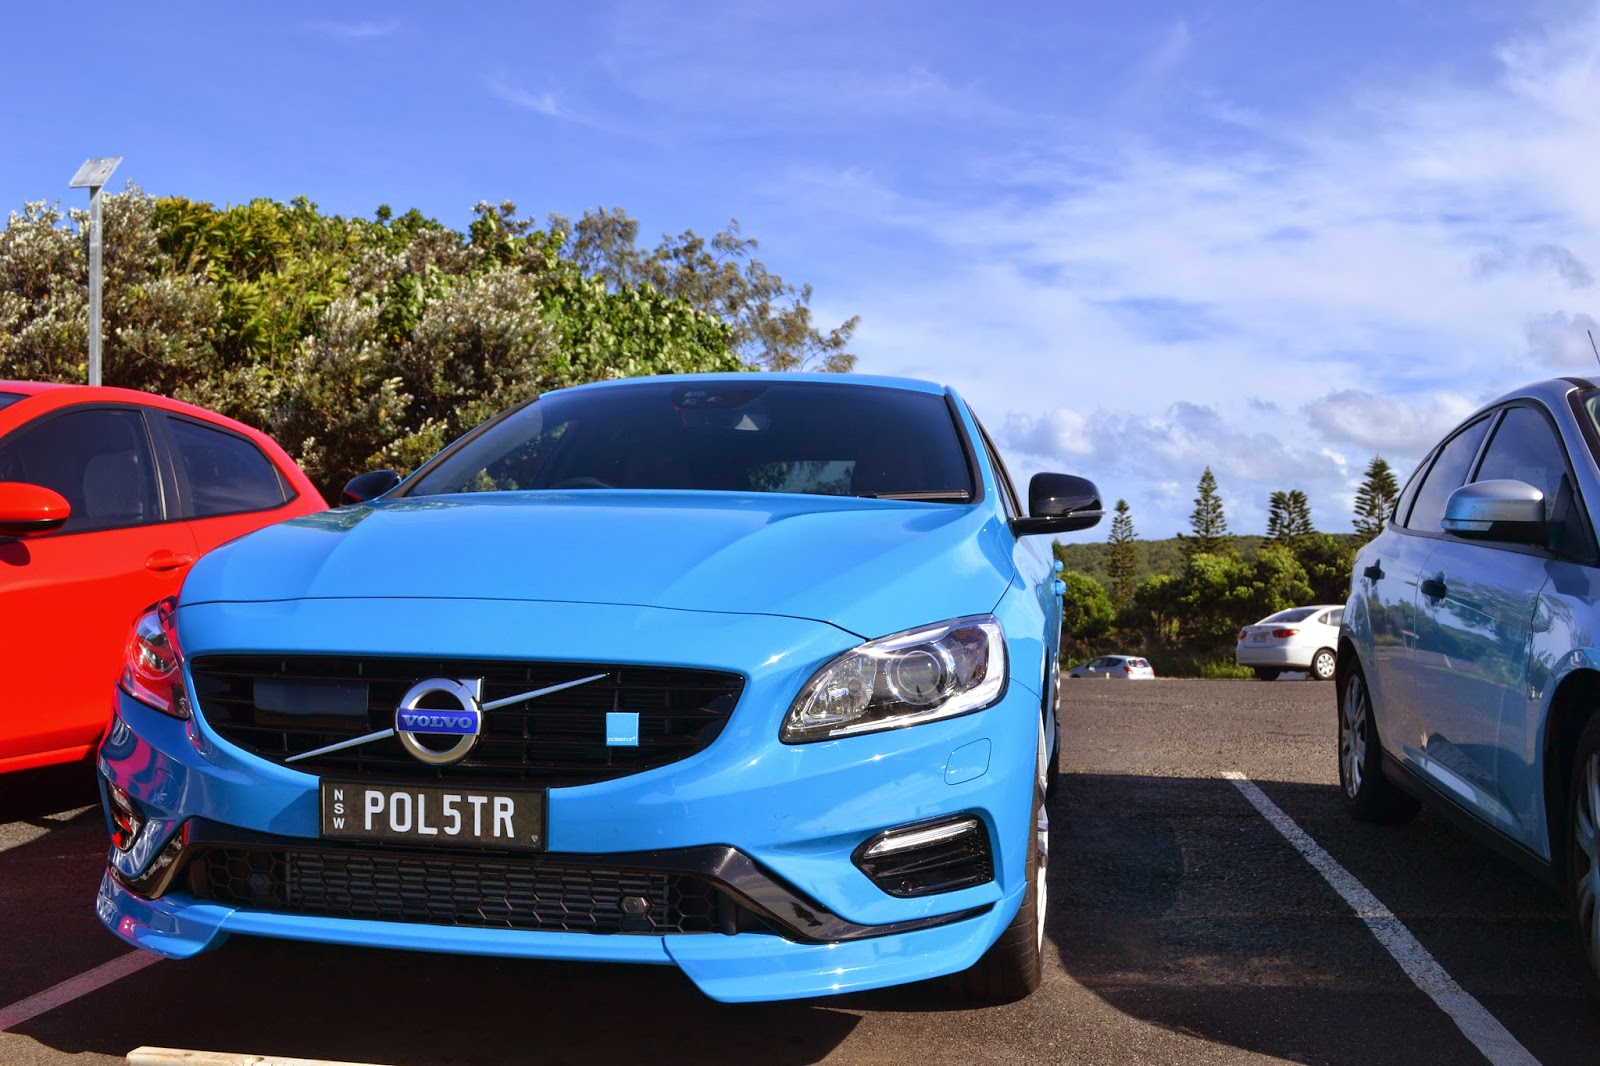 The Volvo V60 Polestar enjoying the Autumn sun in Byron Bay